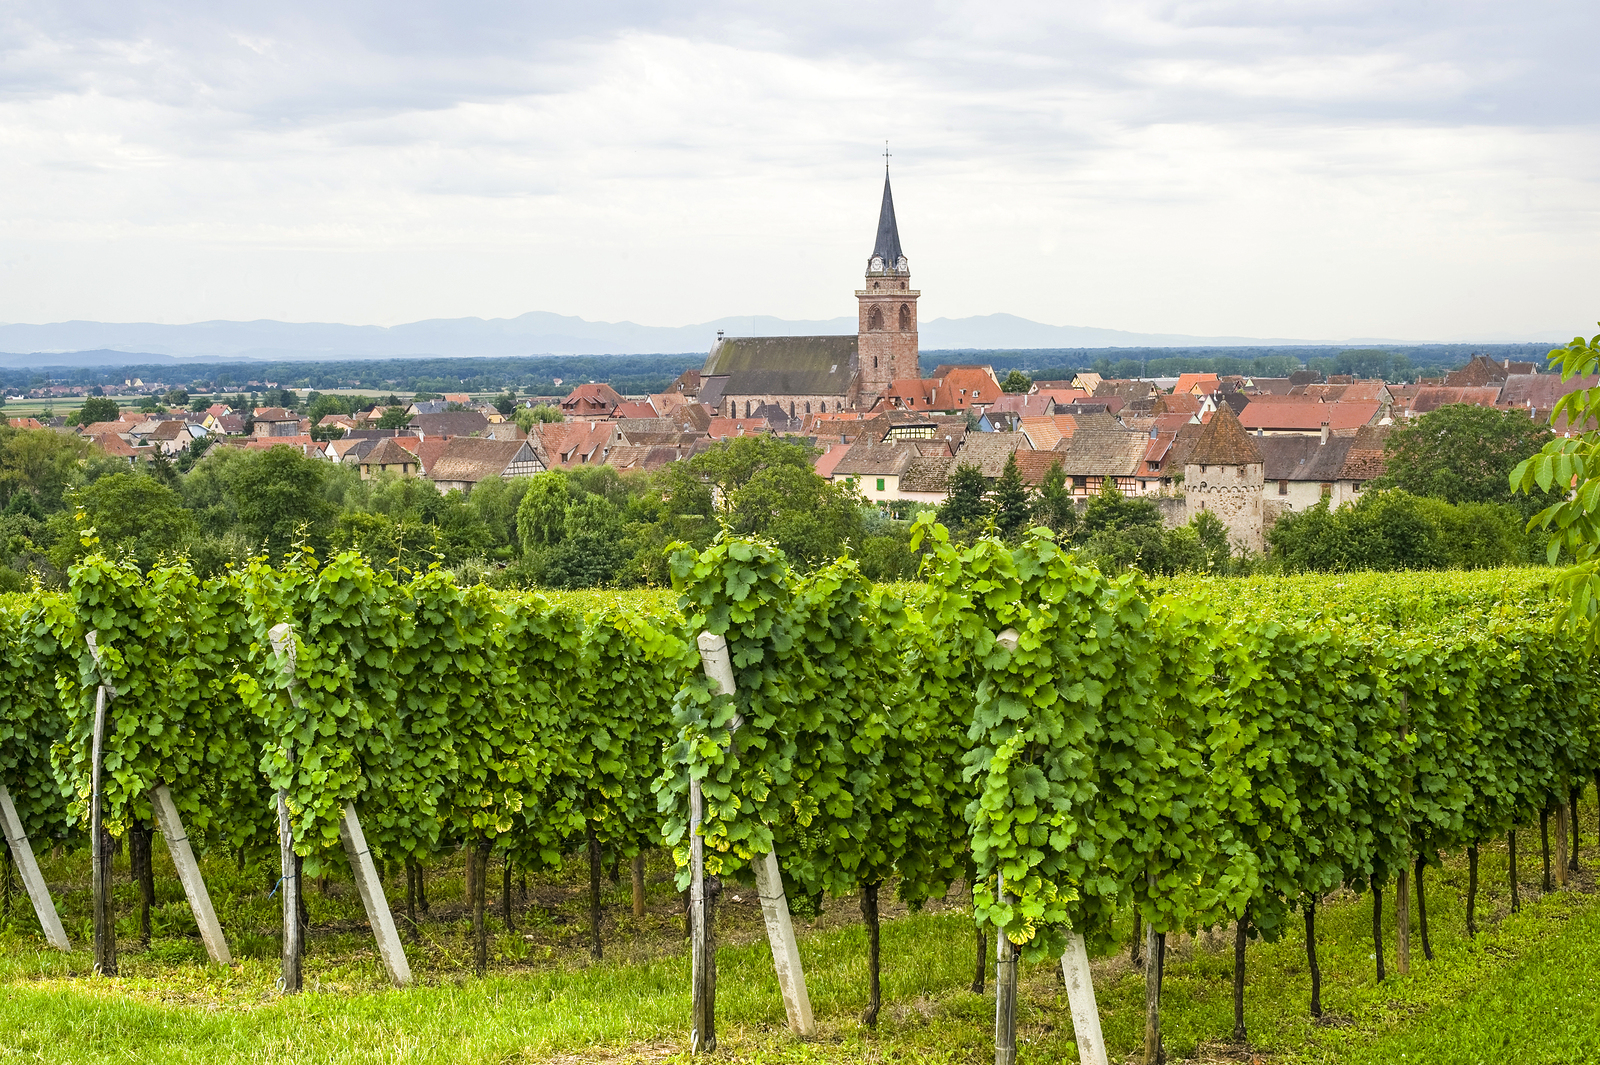 An overview of Bergheim, where Gustave Lorentz is located in Alsace, France.